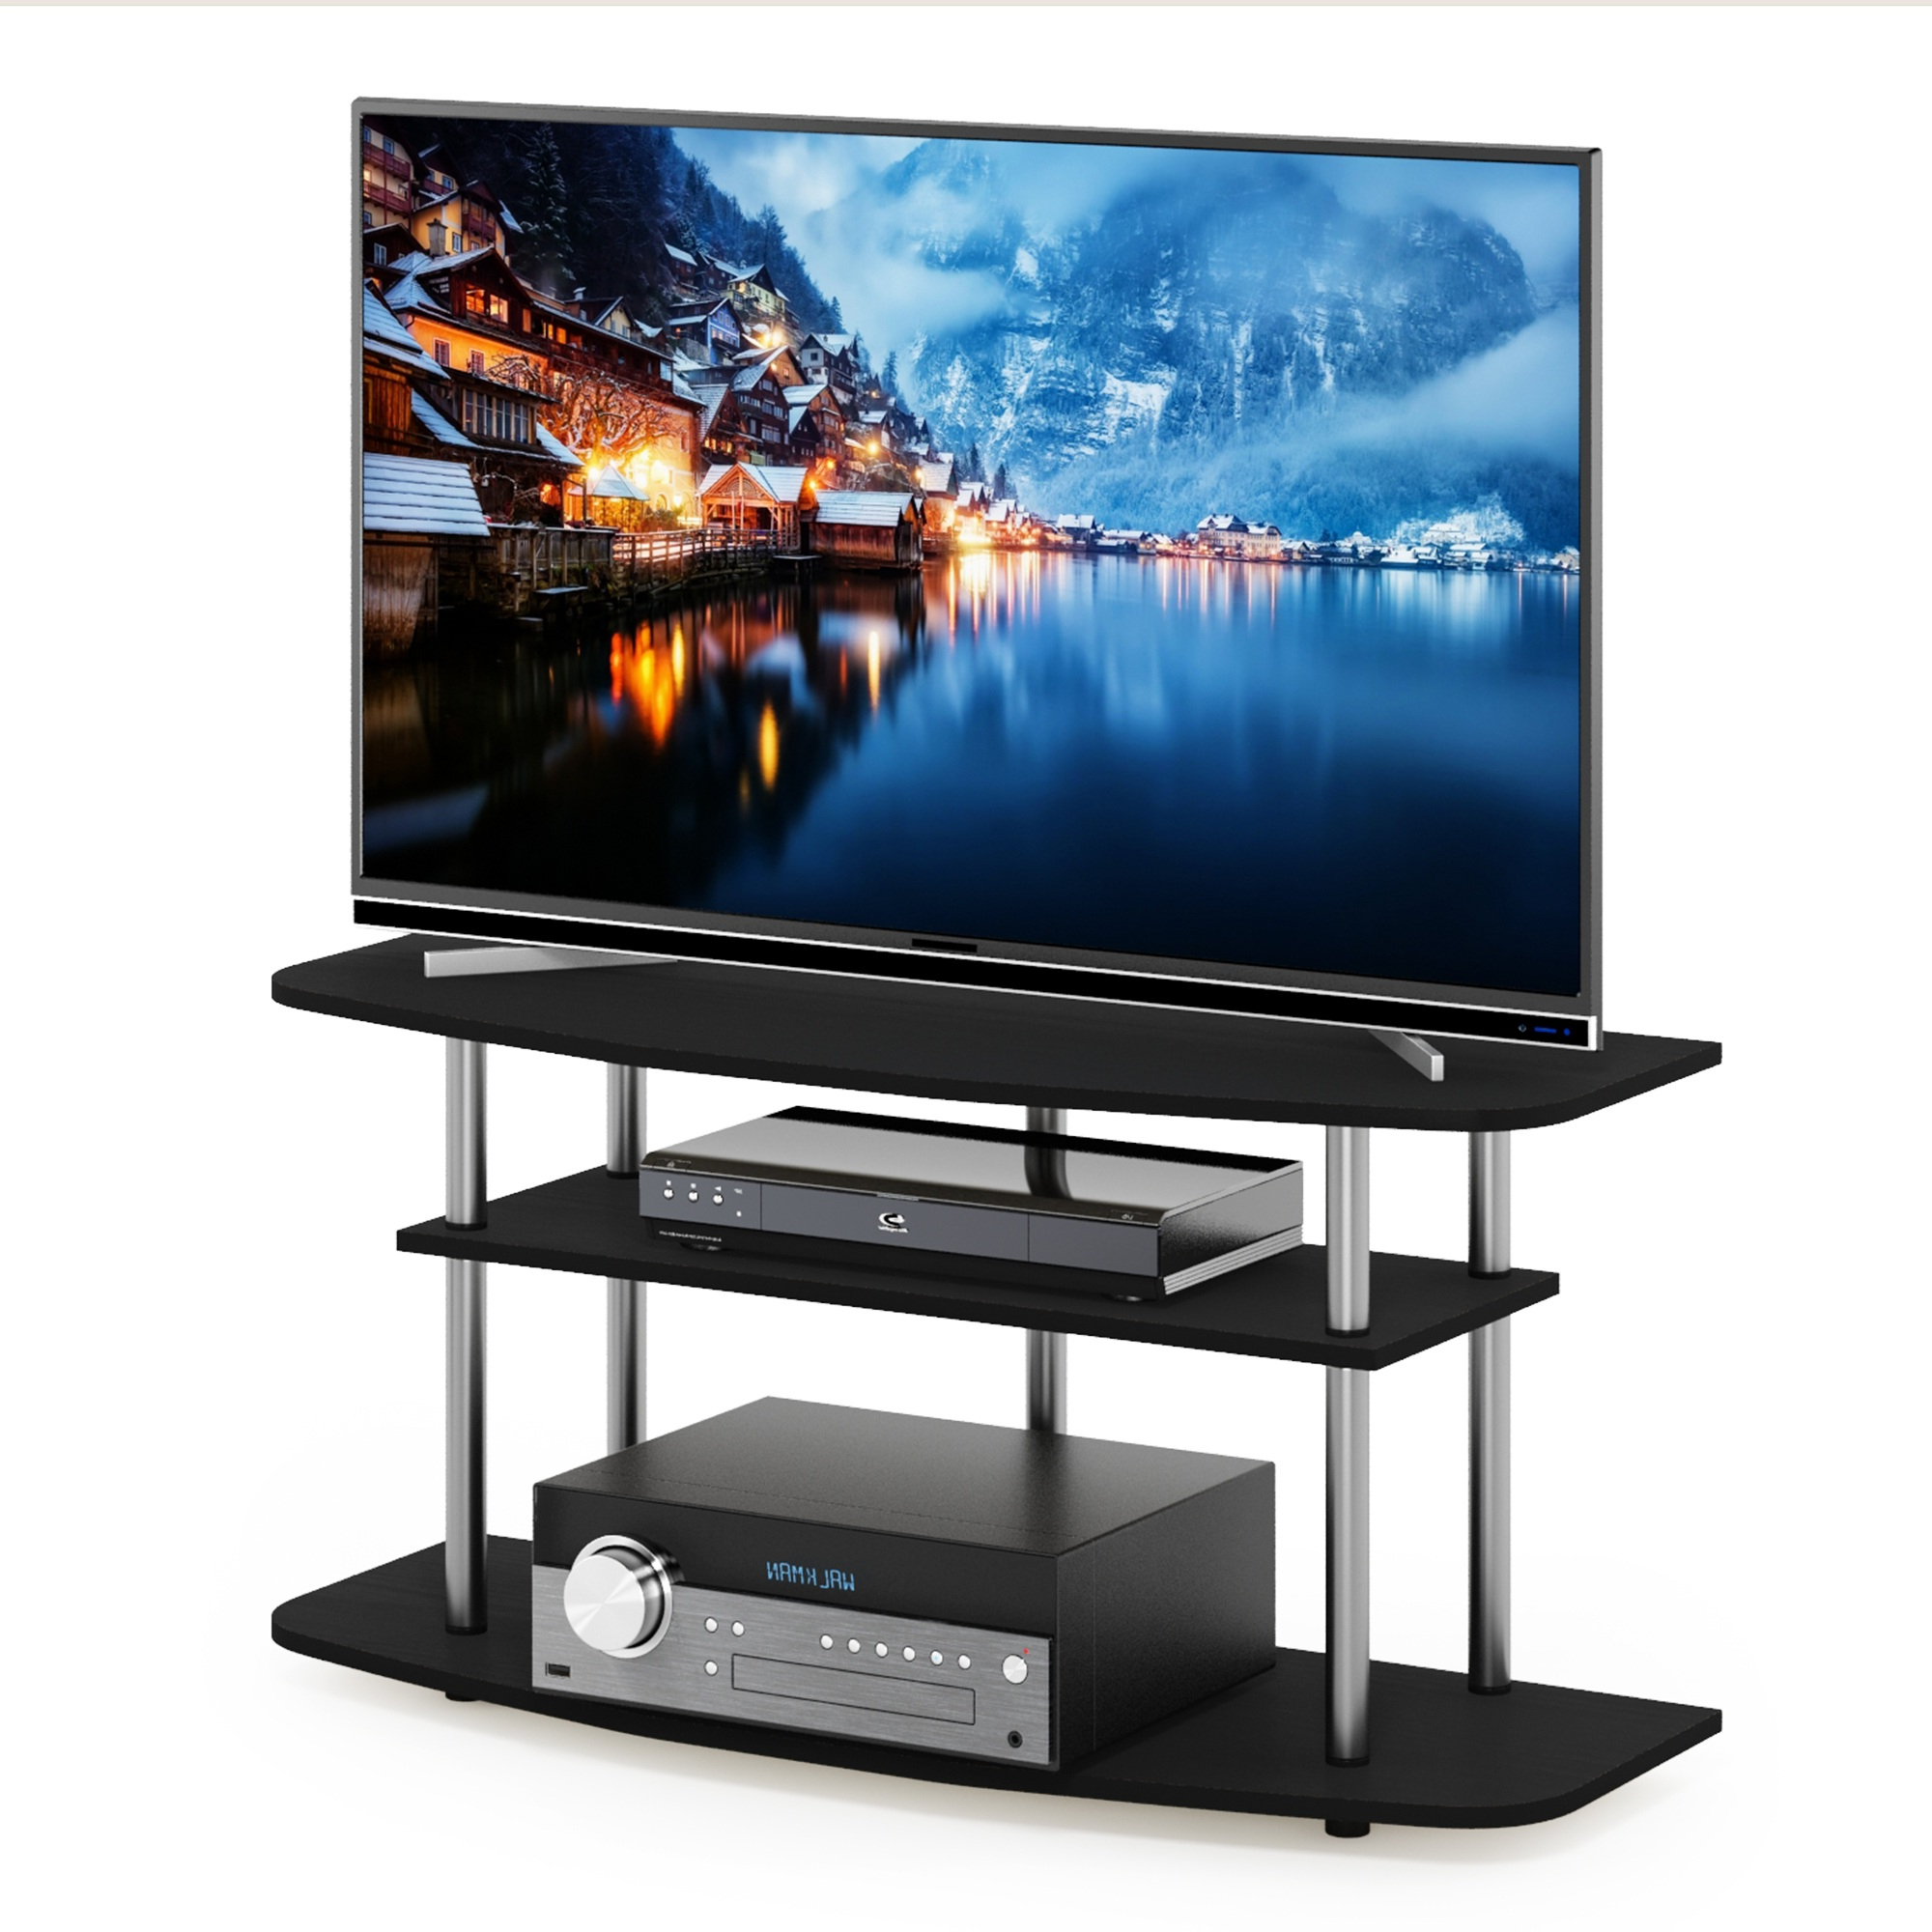 Furinno Frans Turn N Tube 3 Tier Tv Stand For Tv Up To 46 Regarding Furinno Turn N Tube No Tool 3 Tier Entertainment Tv Stands (View 12 of 20)